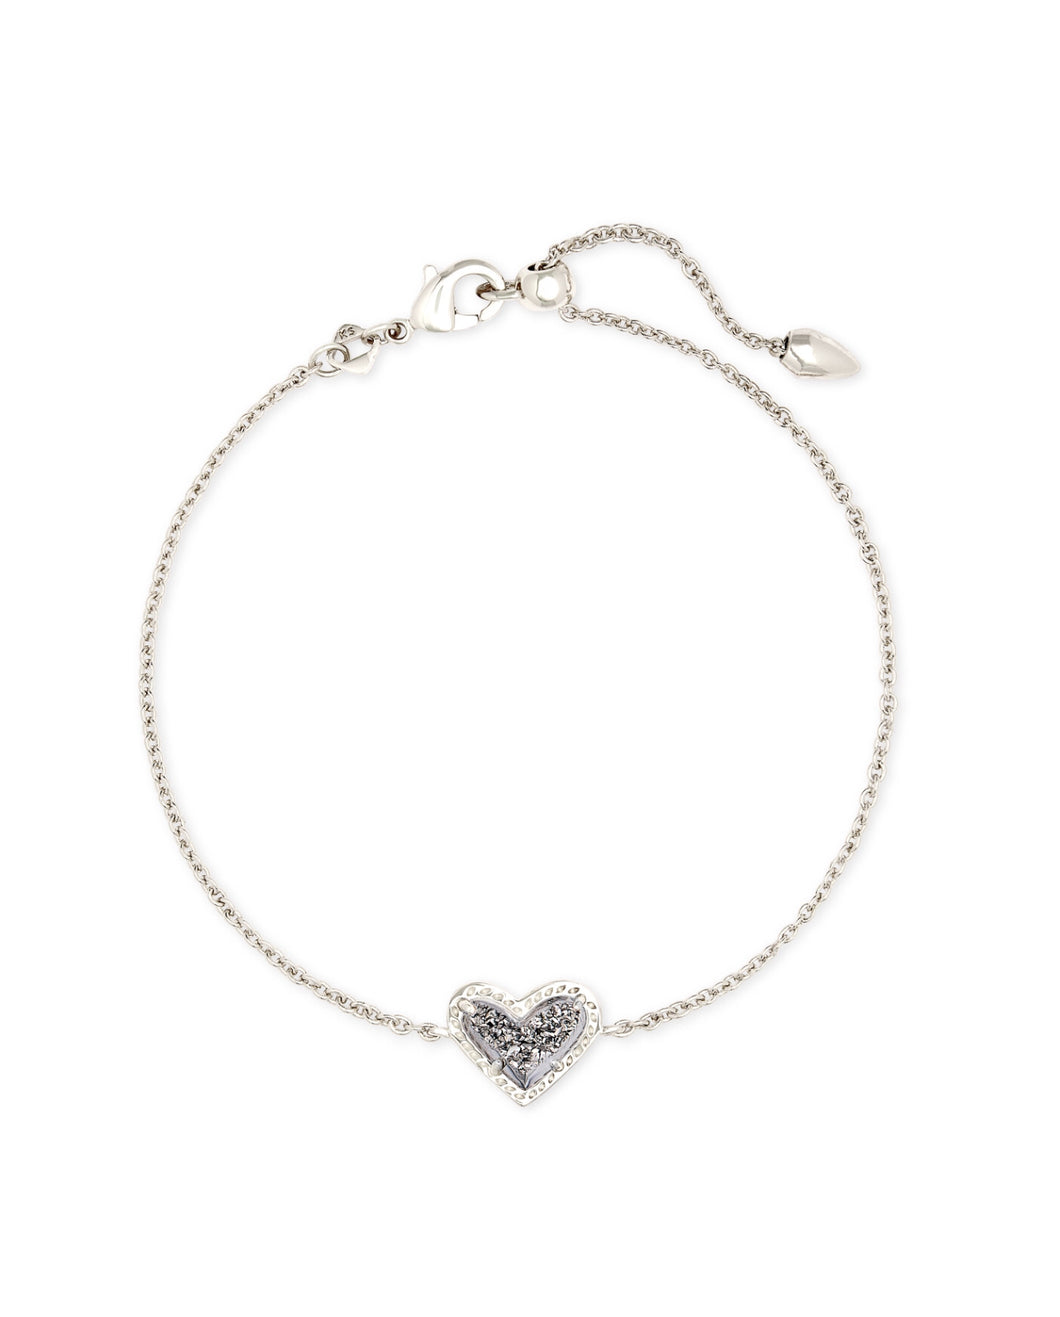 Kendra Scott: Ari Heart Delicate Bracelet - Platinum Drusy - The Vogue Boutique